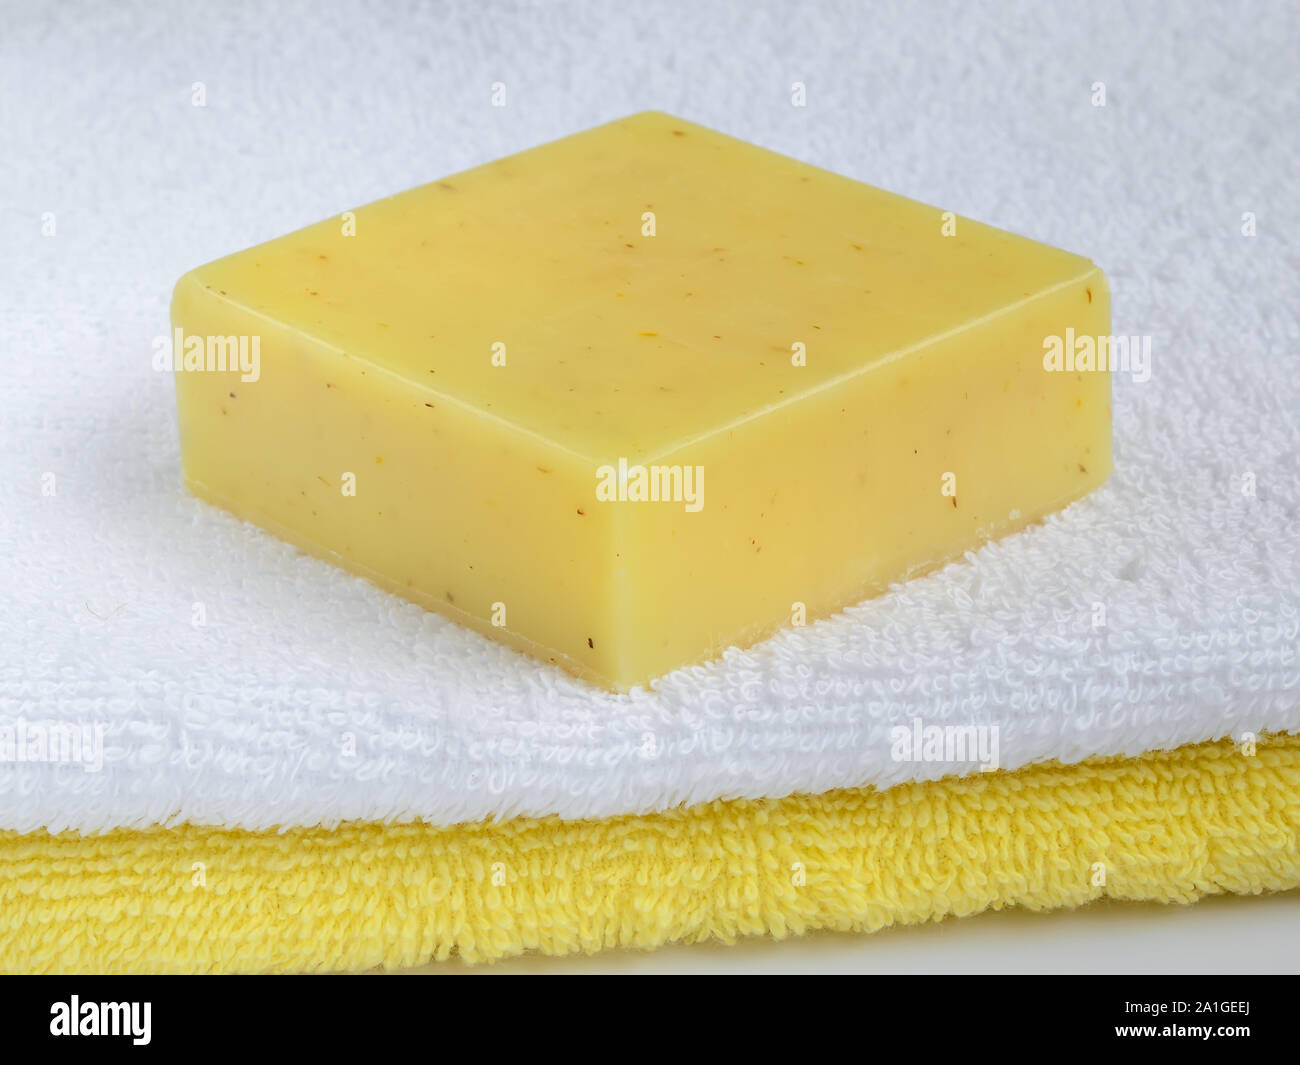 Yellow handmade lemon soap bar on a terry cotton towel. Natural toiletries and hygiene products with herbs and essential oils. Front view. Stock Photo